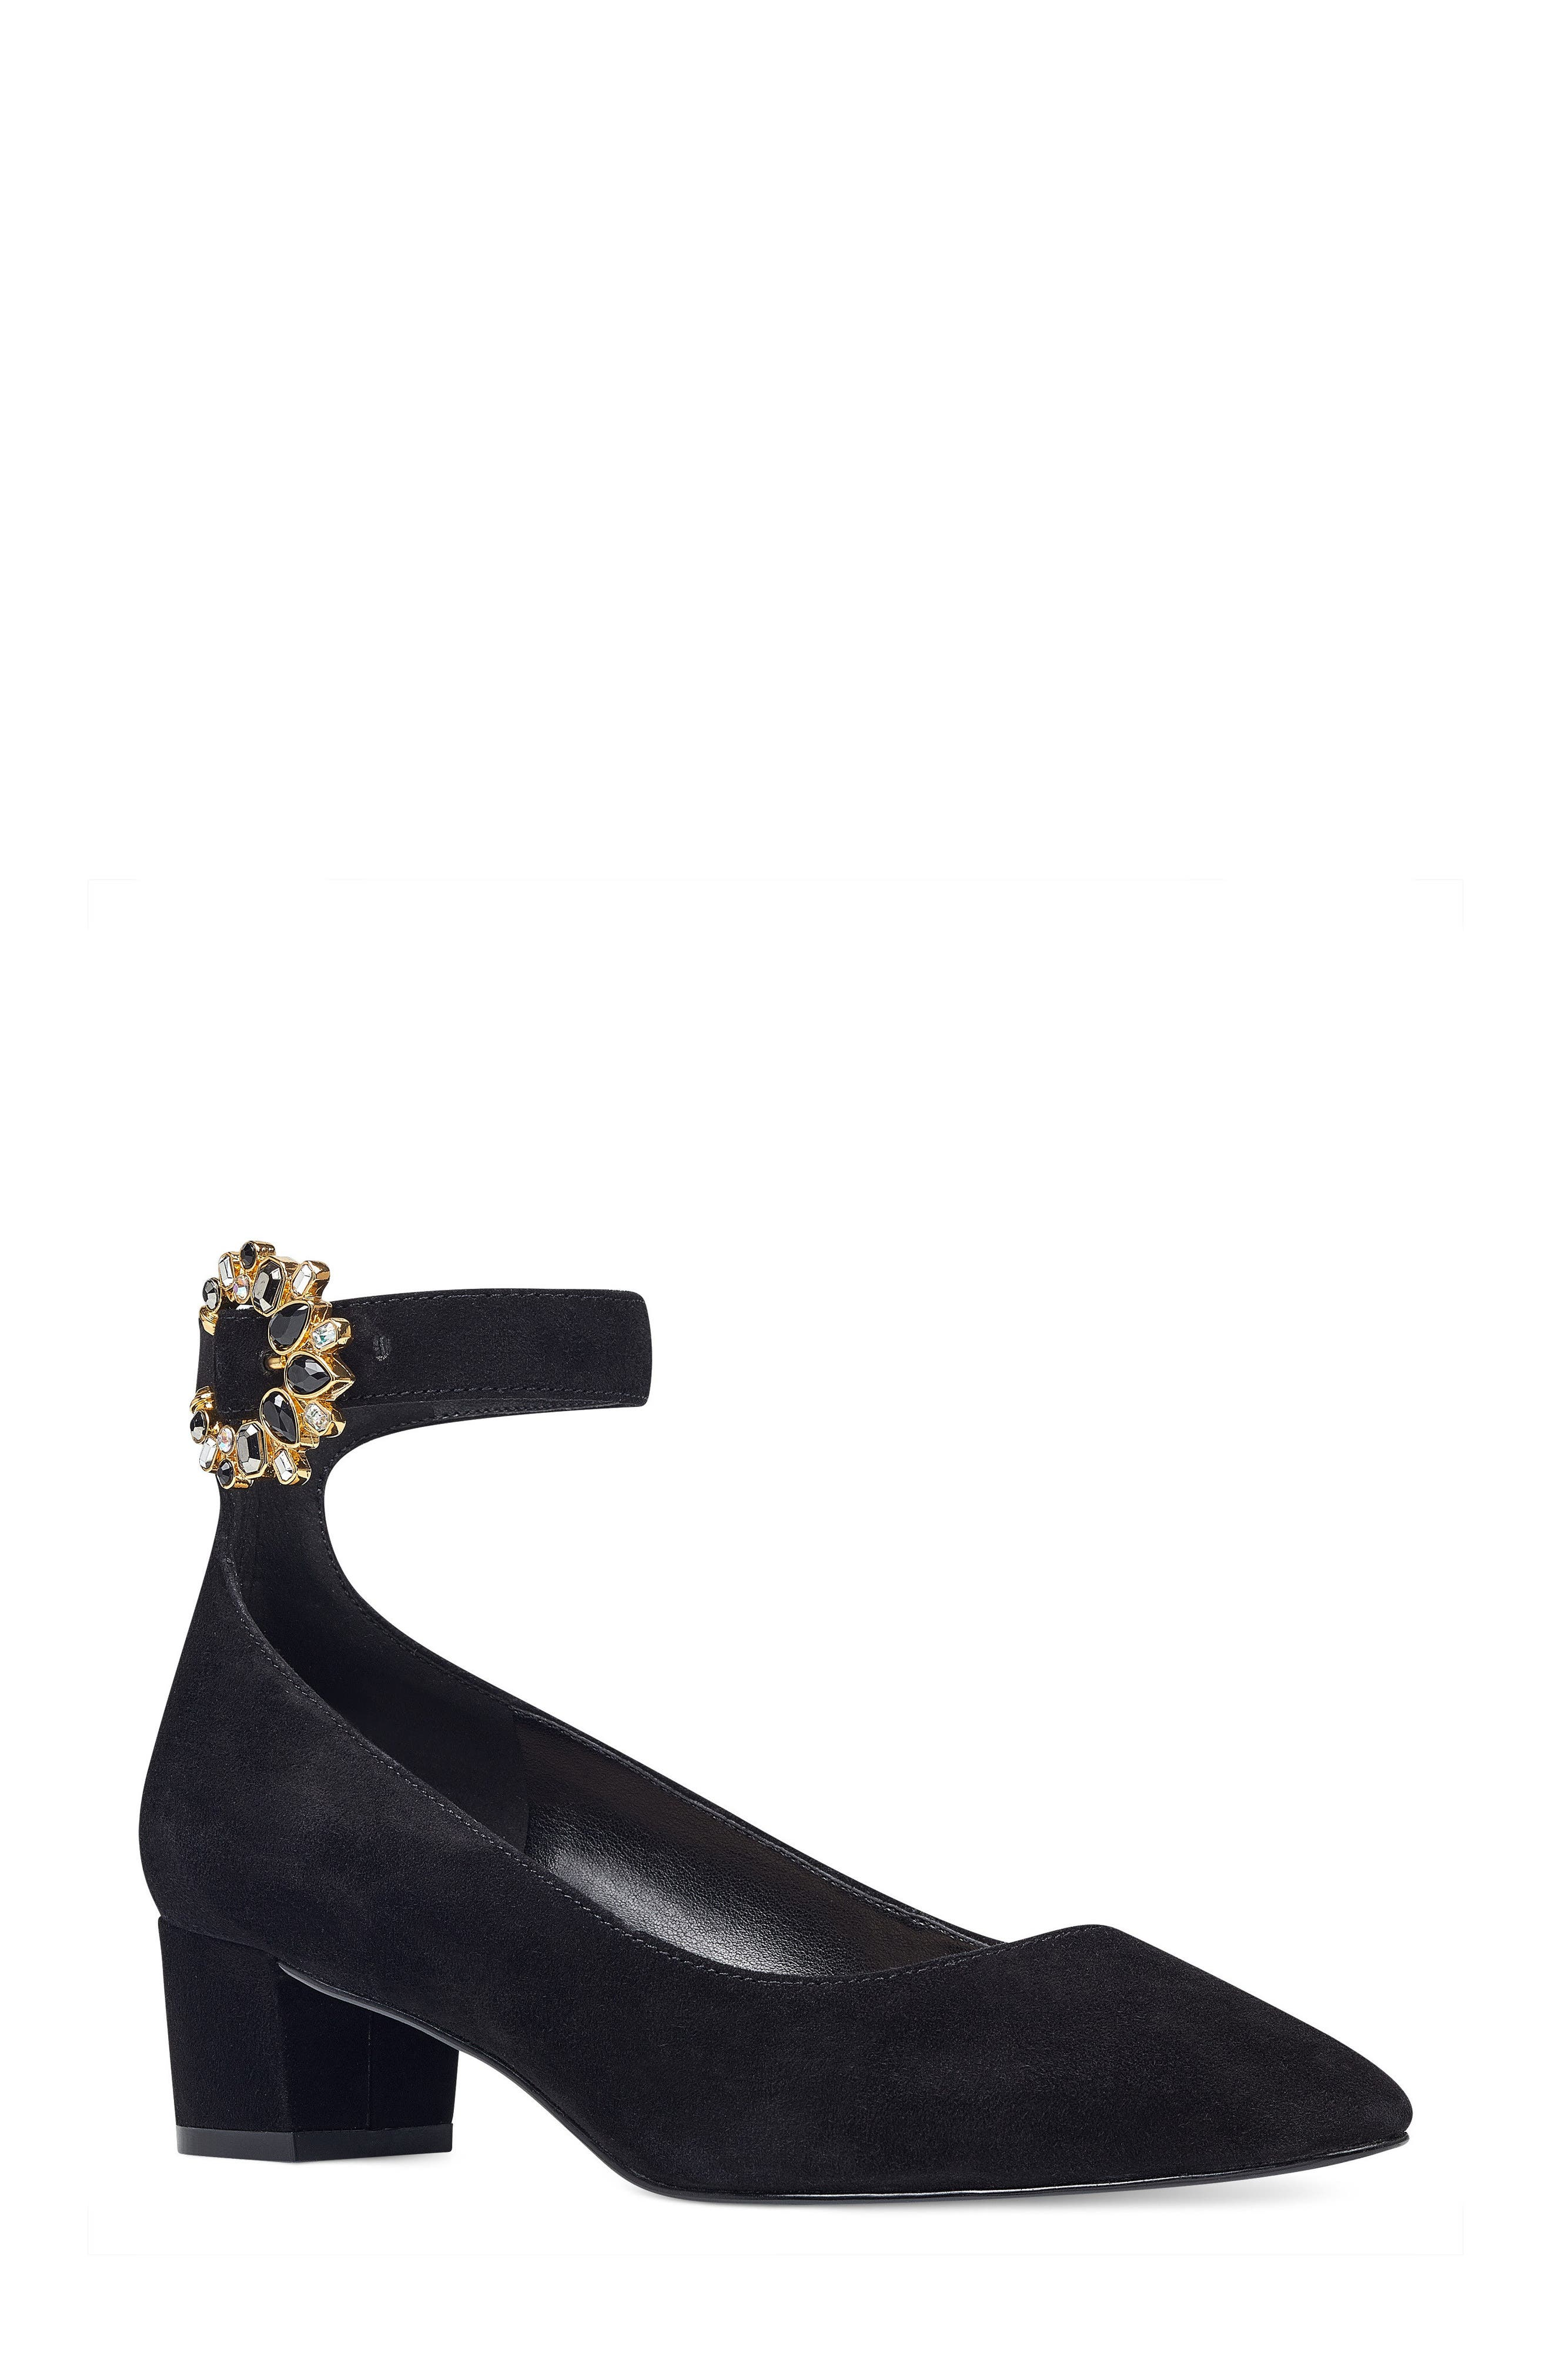 Bartly Ankle Strap Pump,                         Main,                         color, 001